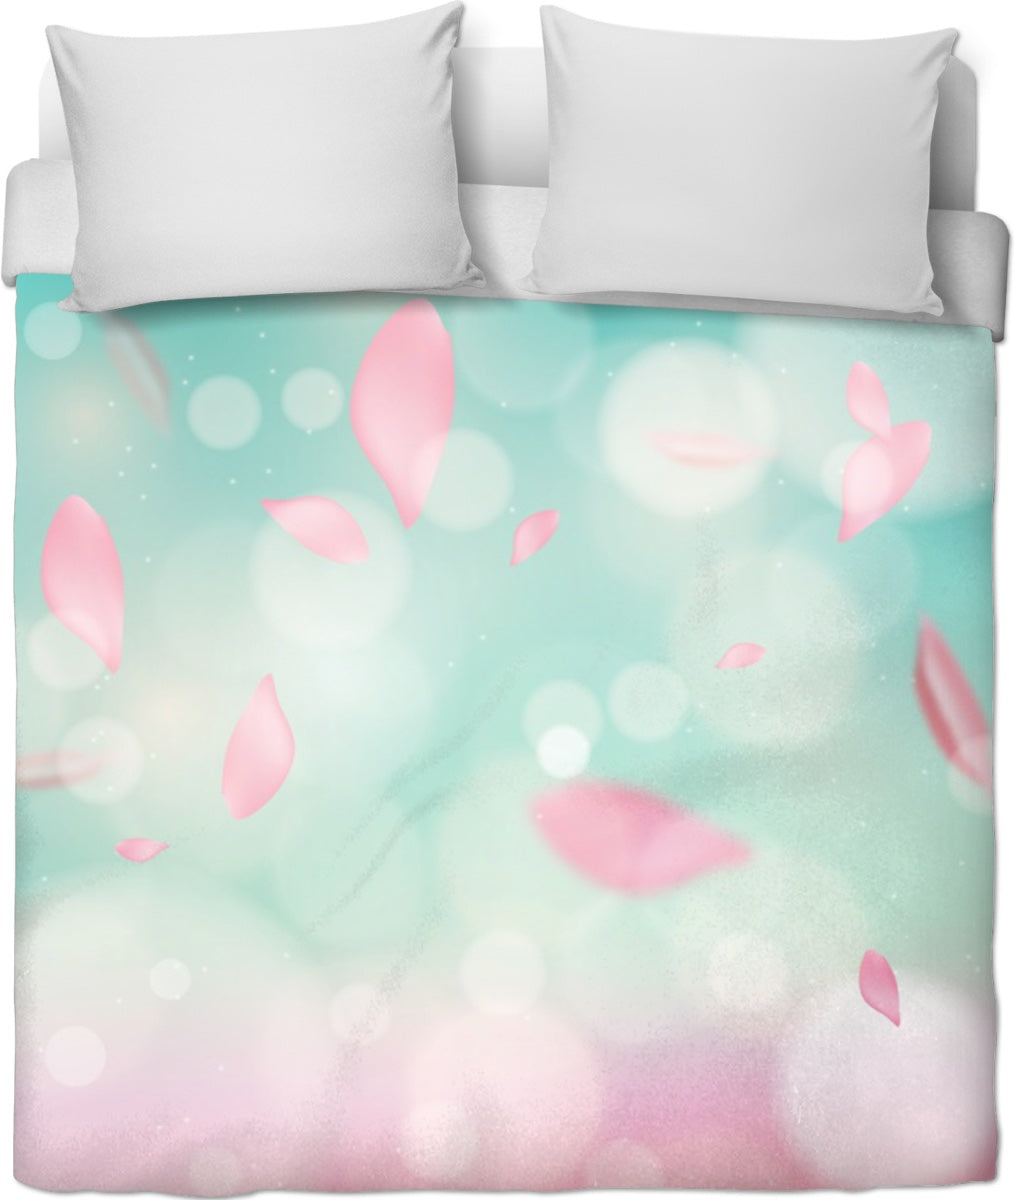 Minty Leaves Duvet Cover